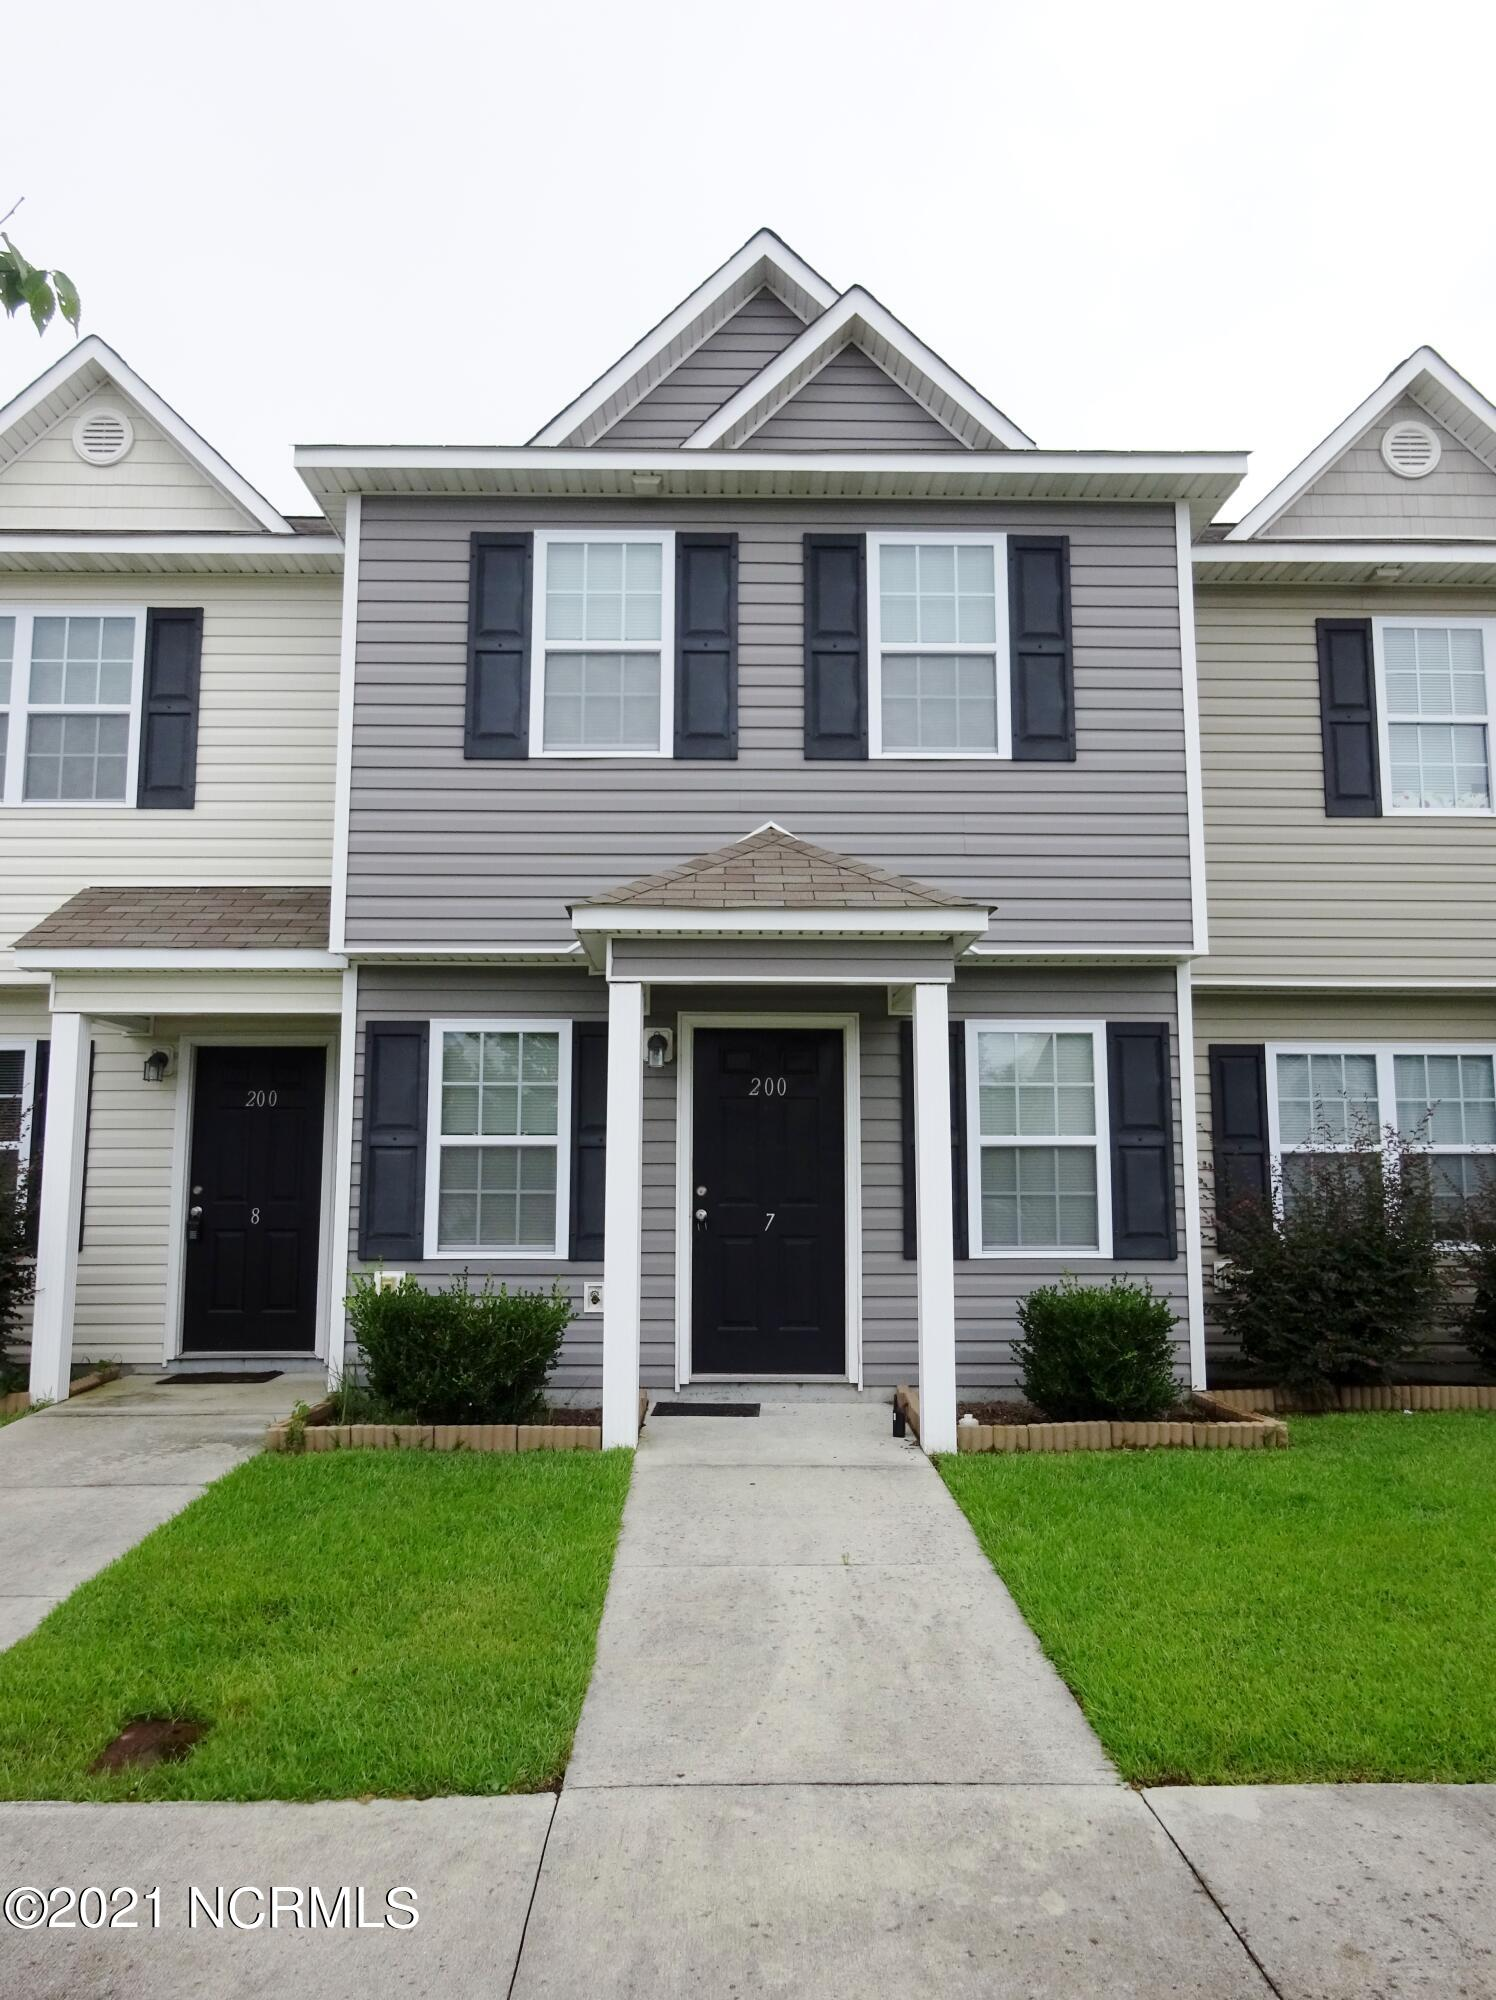 Great location, great home, great price! Perfect location to the back gate of Camp Lejeune!! Open floor plan downstairs with the living space open to the kitchen complete with breakfast bar. Upstairs features two bedrooms each with their own bathroom. Washer/ dryer included (as is). Rear deck with attached storage closet.